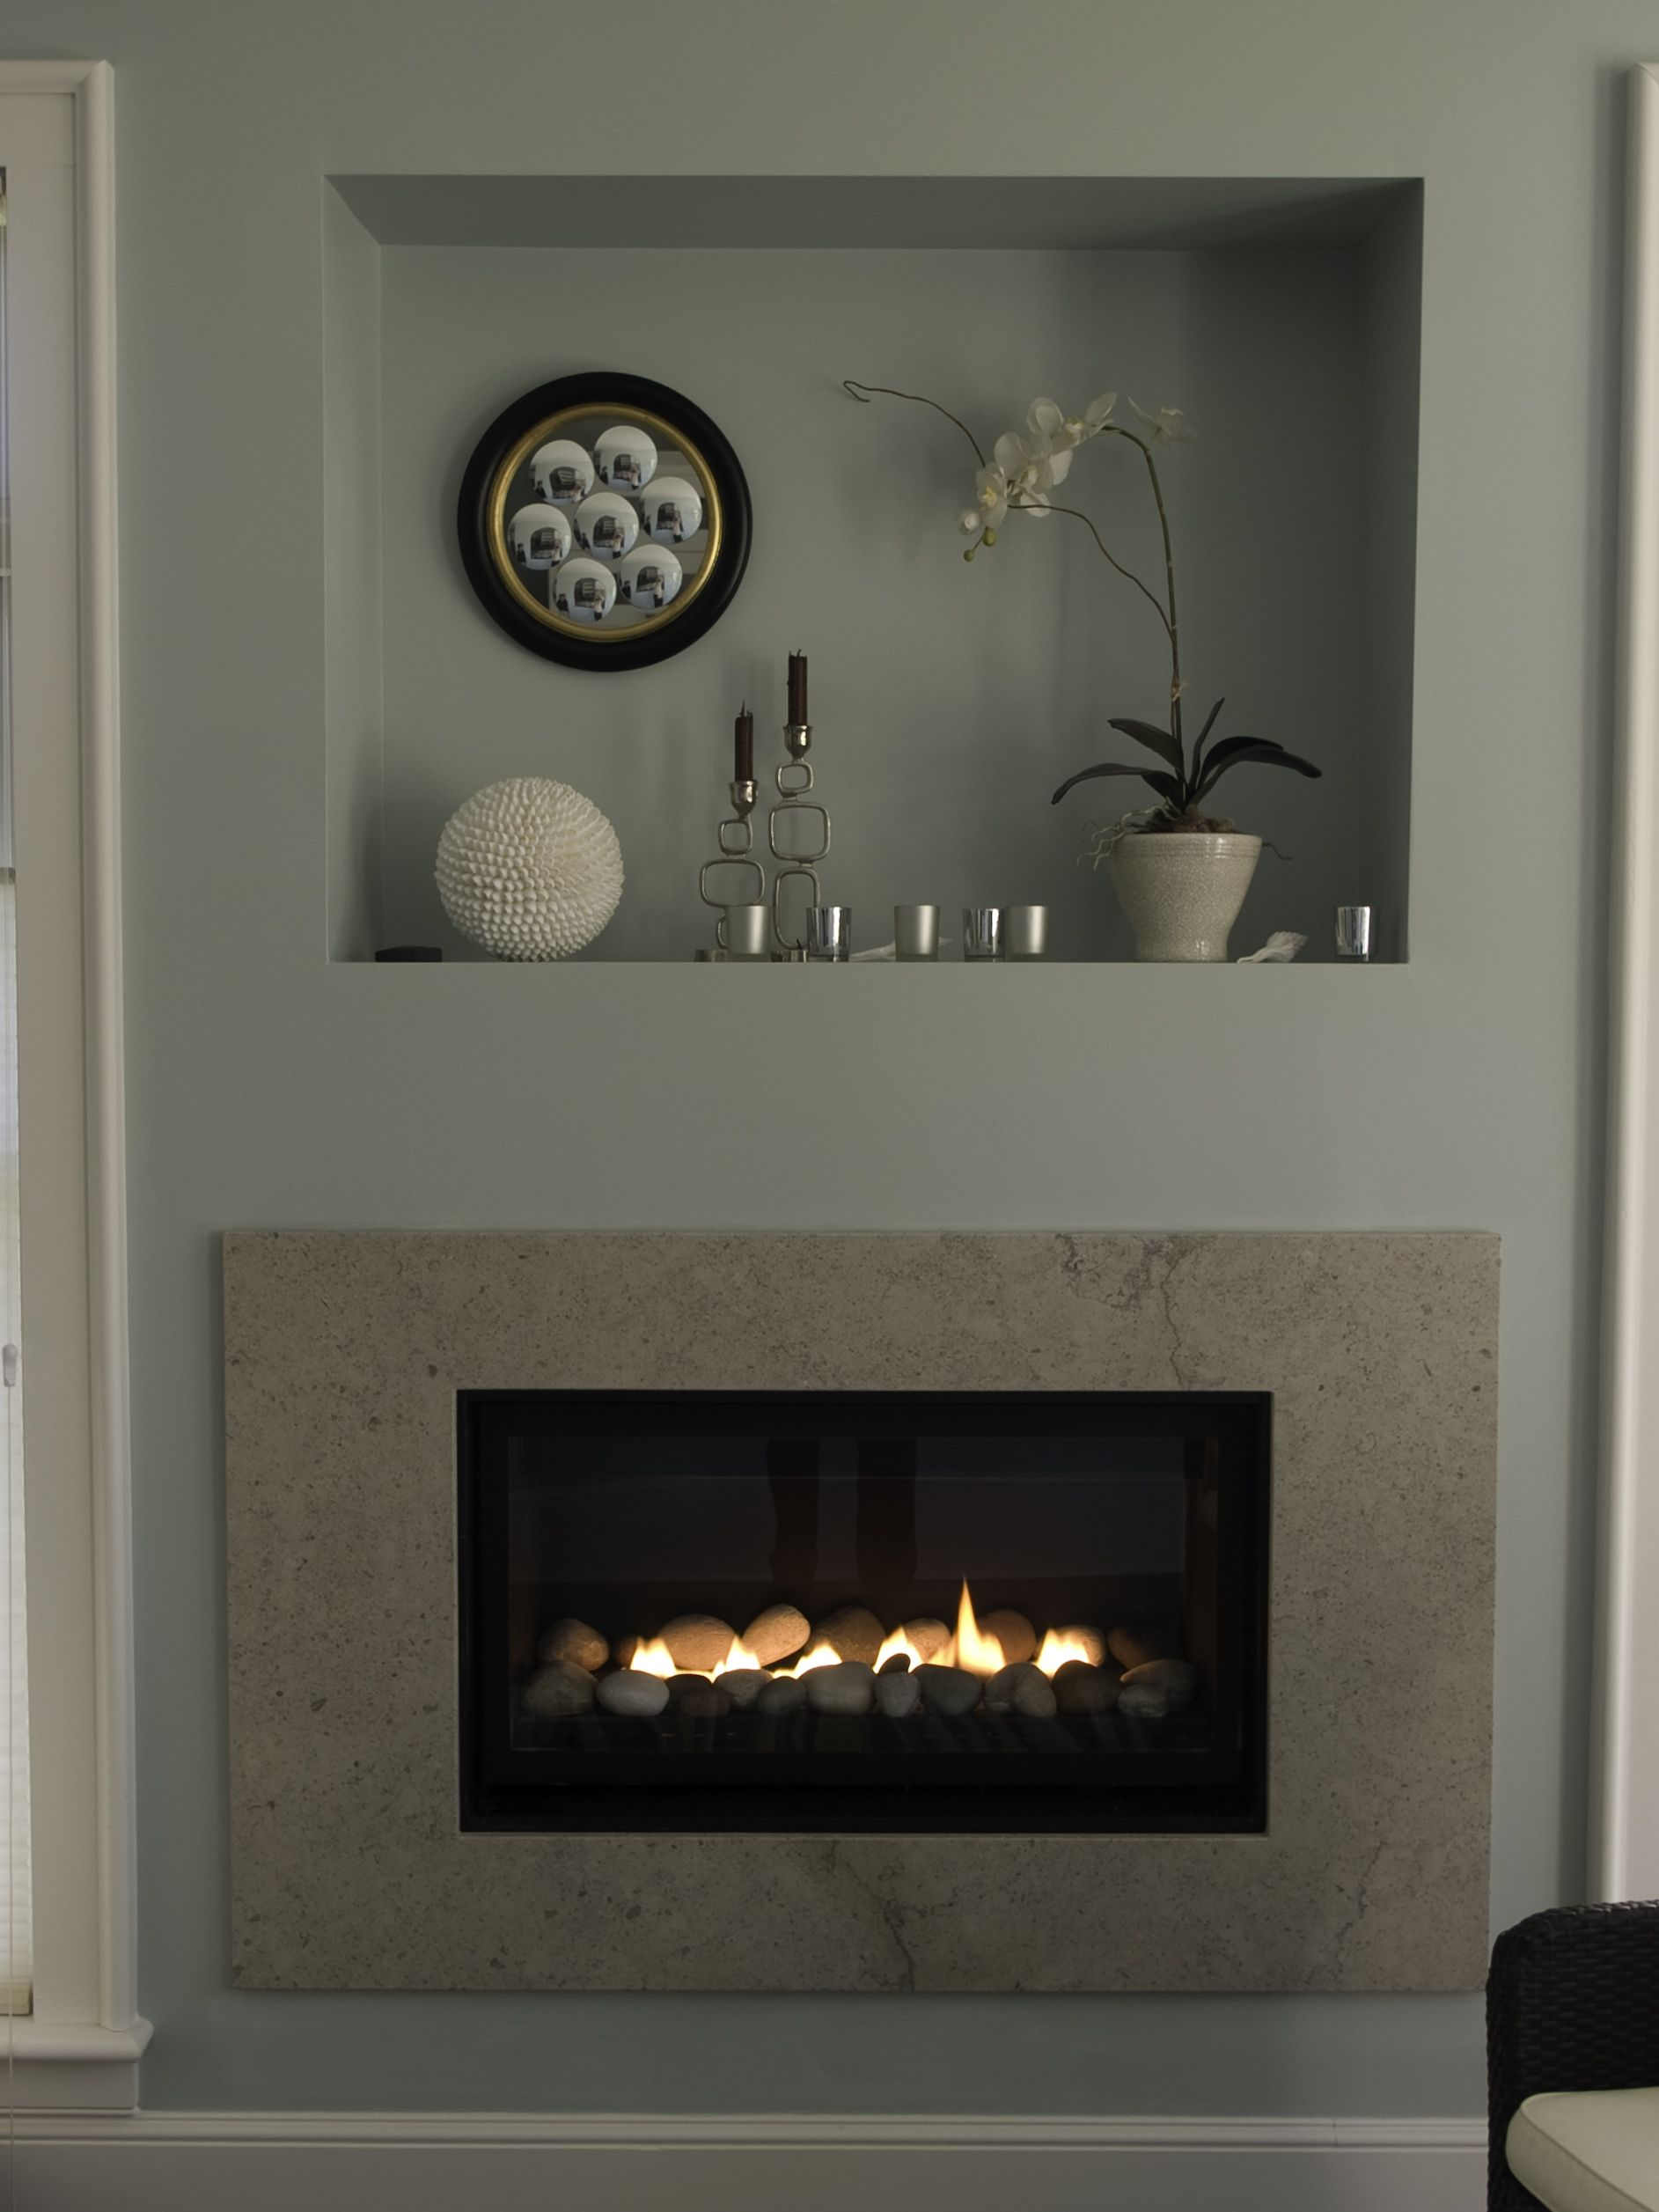 Gas Fireplace With A Clean Face Surround